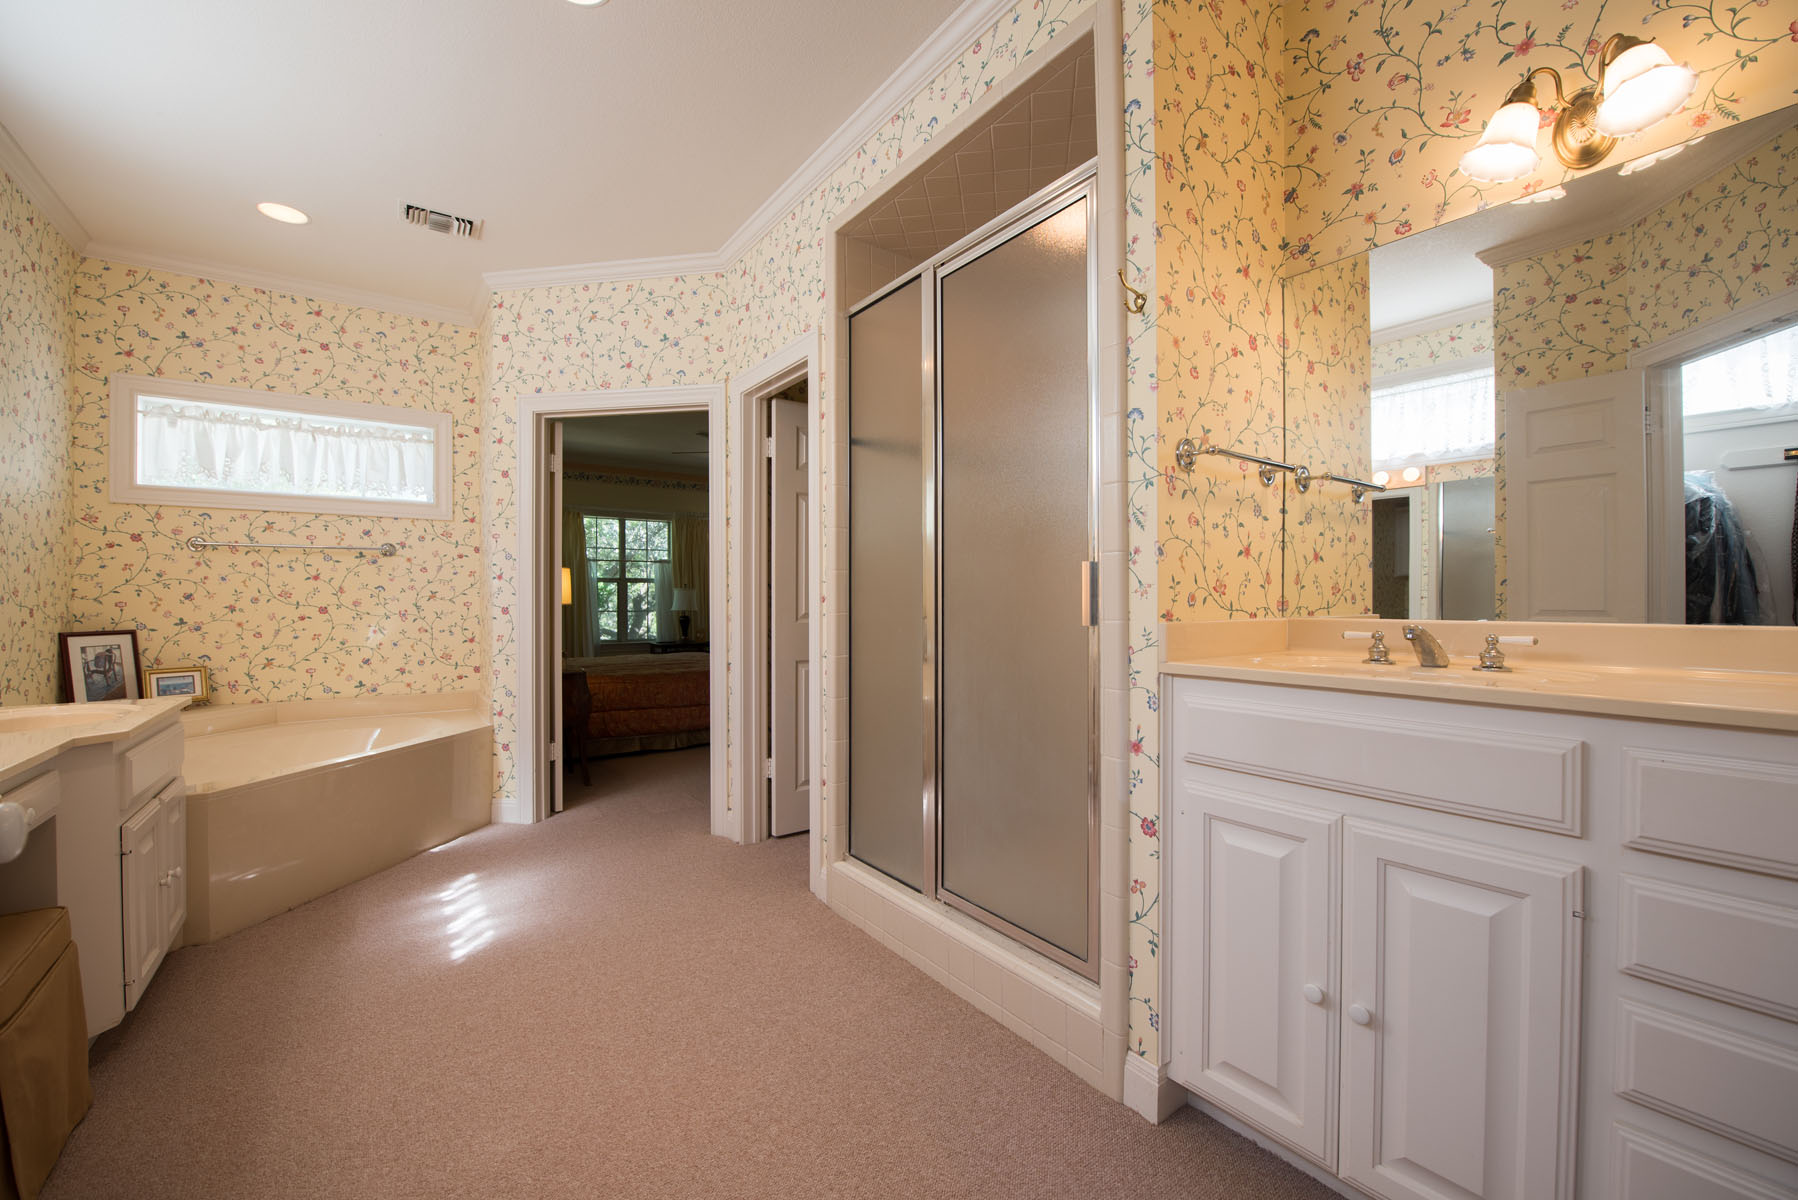 Additional photo for property listing at A Traditional Masterpiece 11 Waterfall Dr The Hills, Texas 78738 Estados Unidos